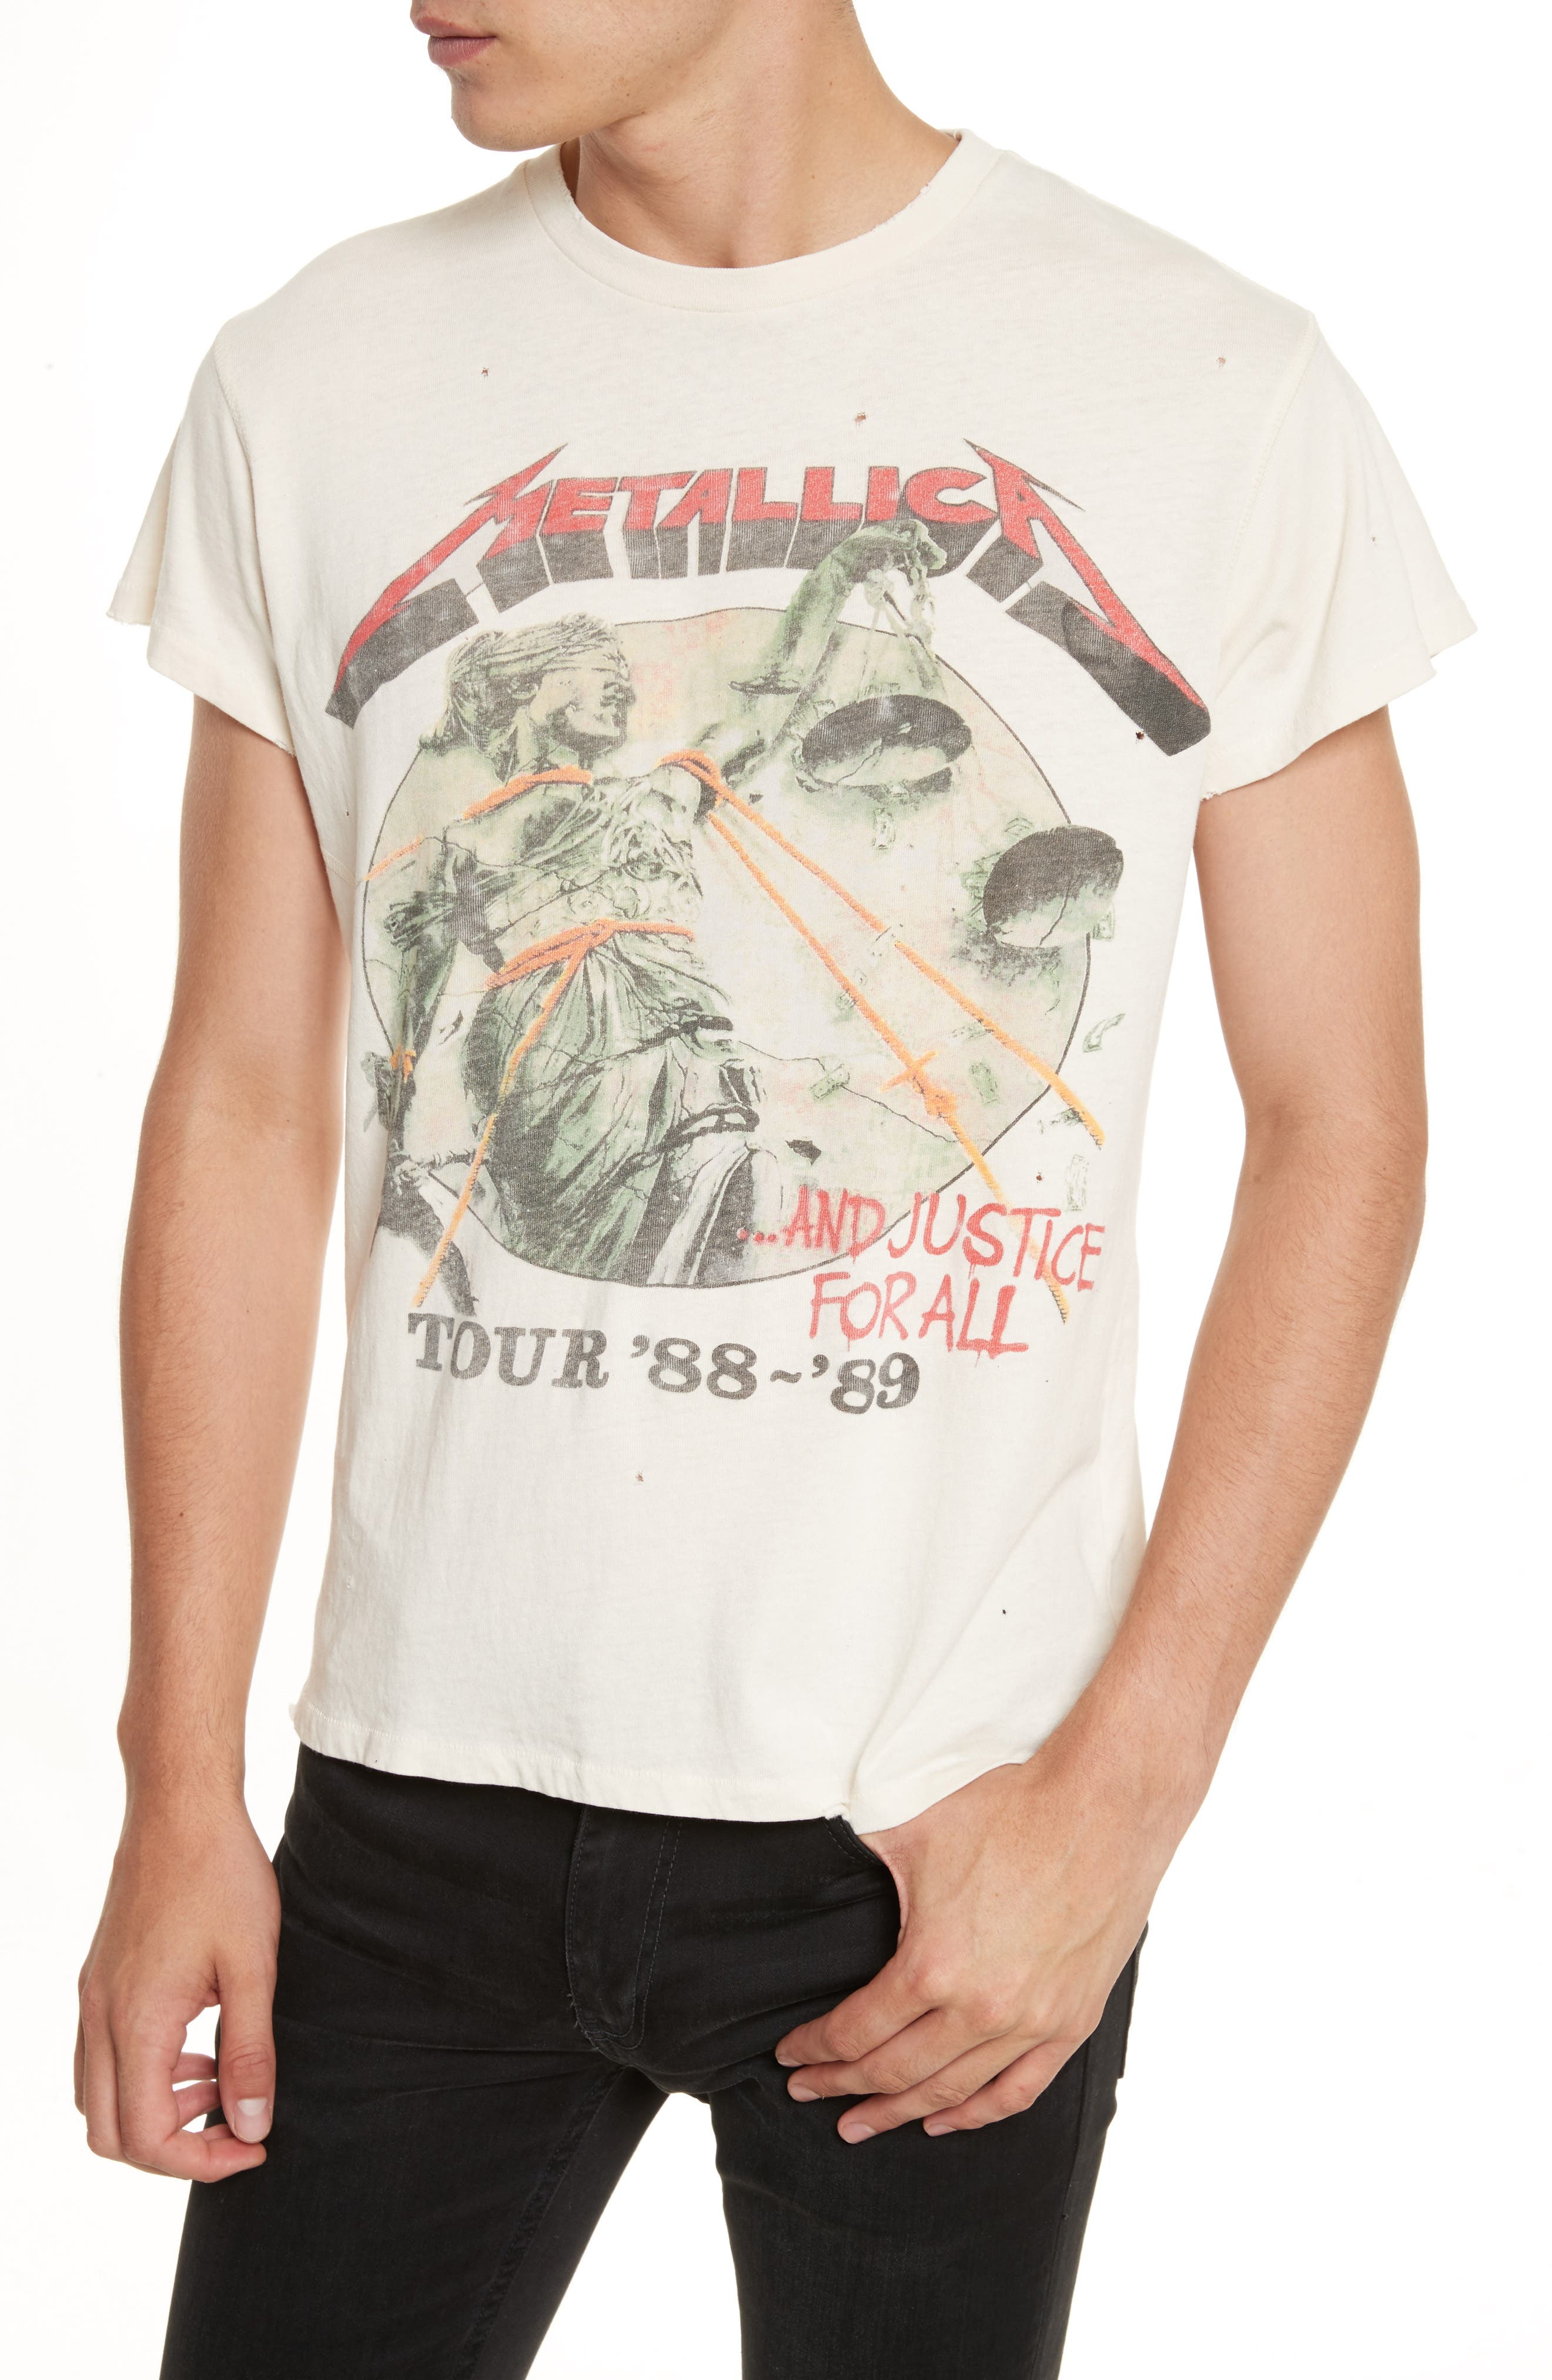 Metallica - And Justice for All Graphic T-Shirt,                             Alternate thumbnail 4, color,                             100